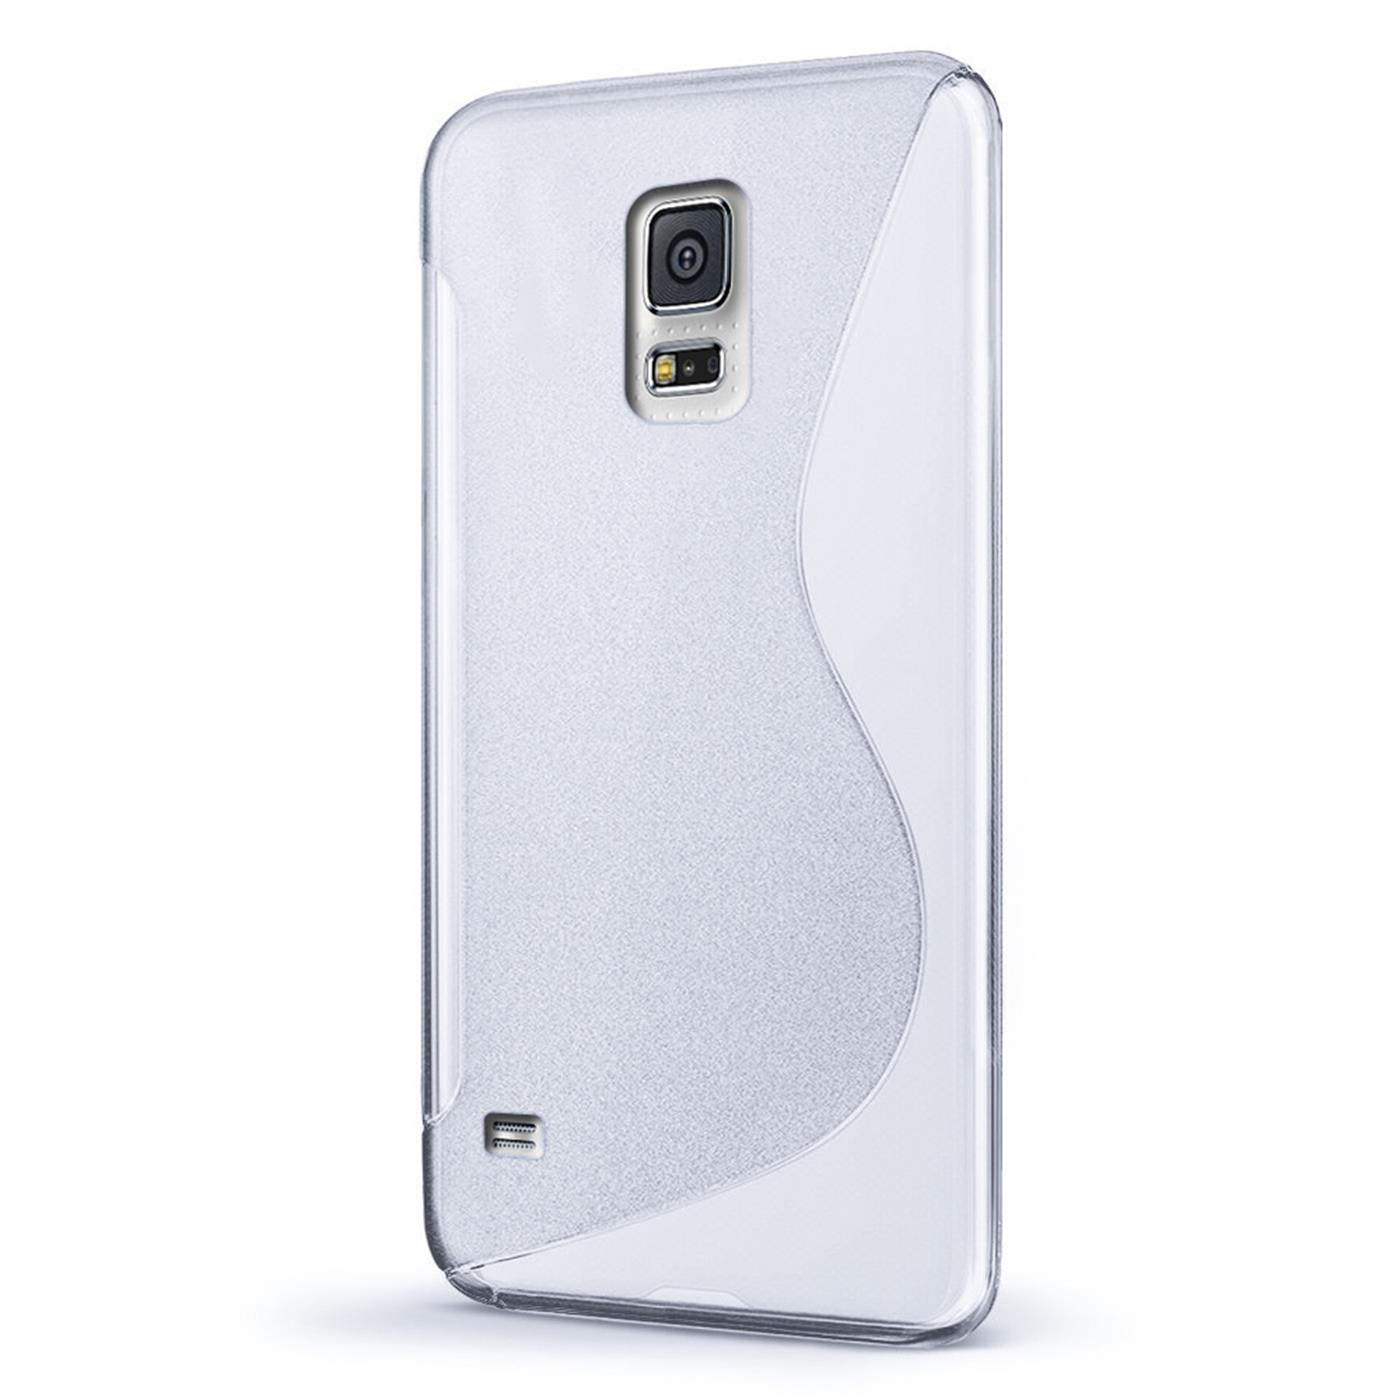 Samsung-Galaxy-s5-Neo-Silikon-Gel-S-Line-Case-Cover-Ultra-Thin-Slim-Back-Bumper Indexbild 24